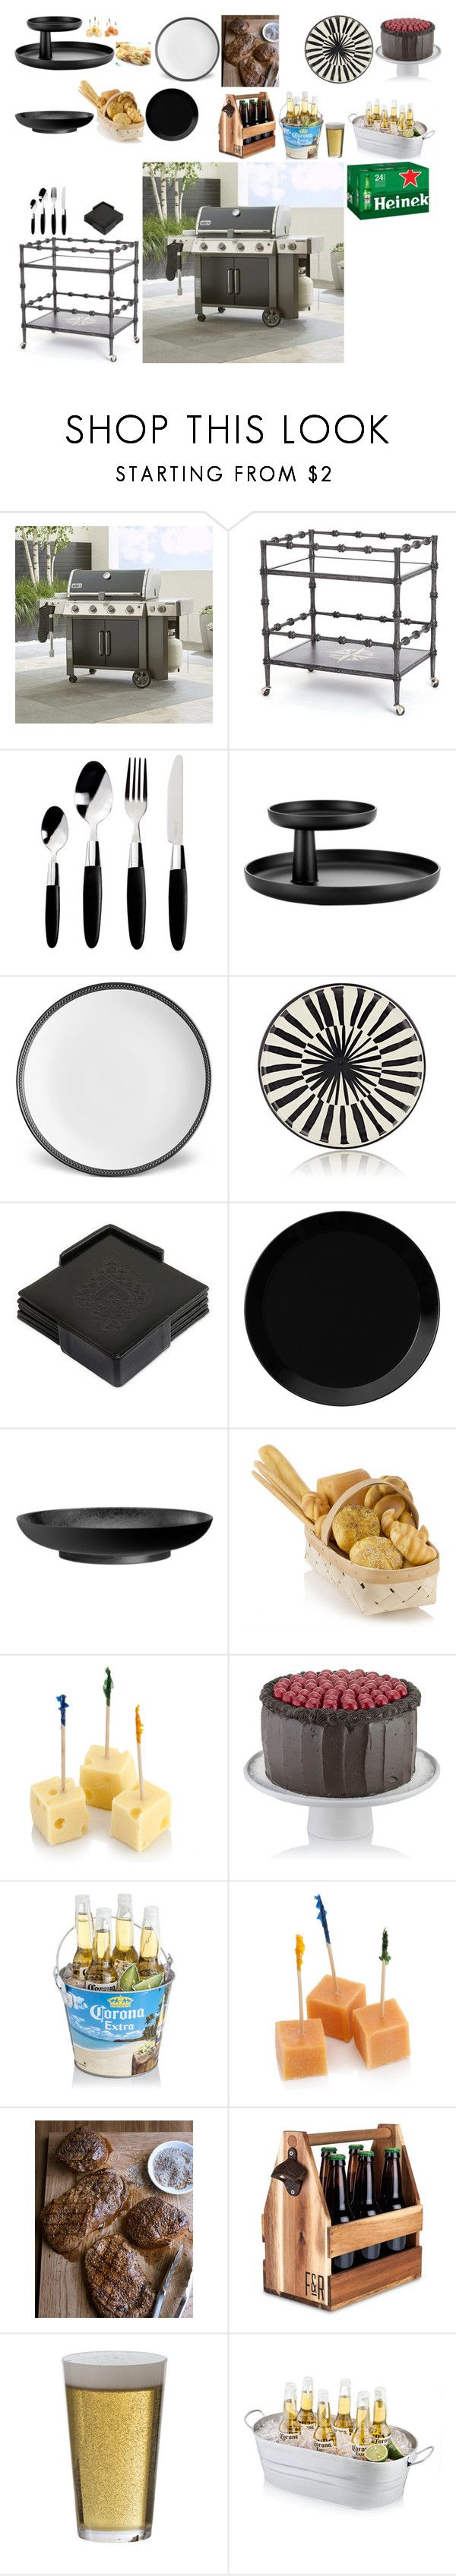 """Everything to do the barbecue"" by stylev ❤ liked on Polyvore featuring interior, interiors, interior design, home, home decor, interior decorating, Crate and Barrel, Global Views, Viners and Vitra"